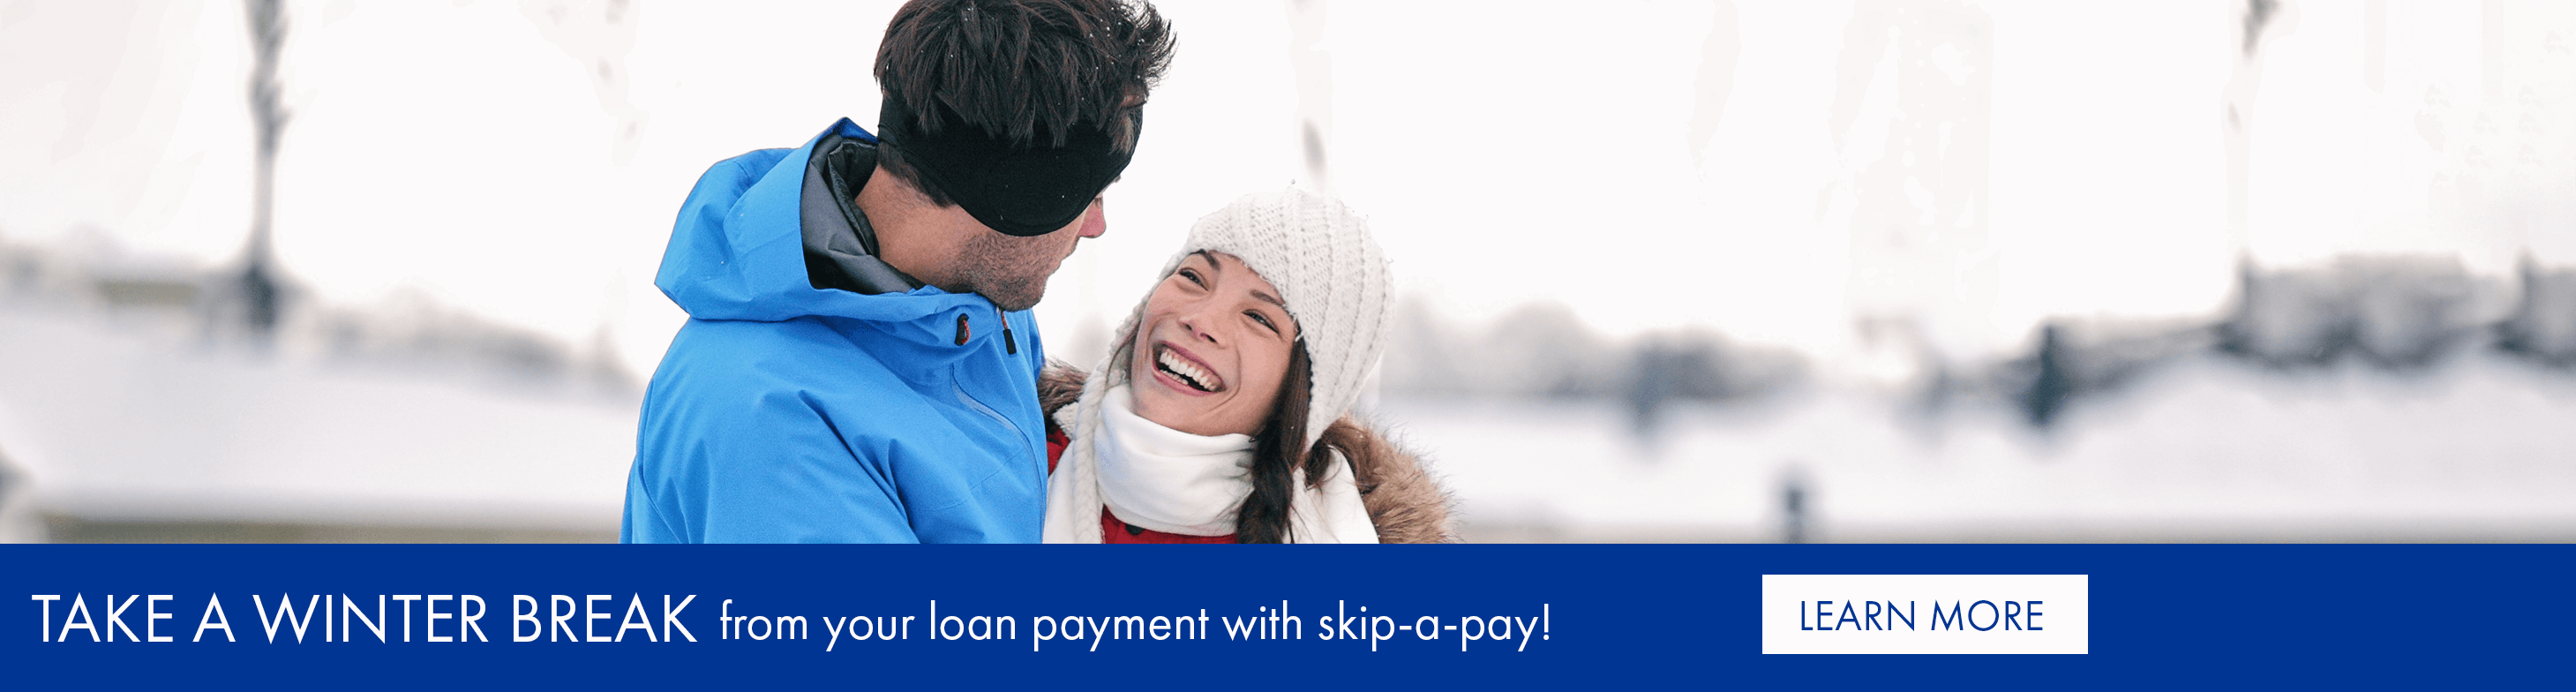 Take a winter break from your loan payment with skip-a-pay!